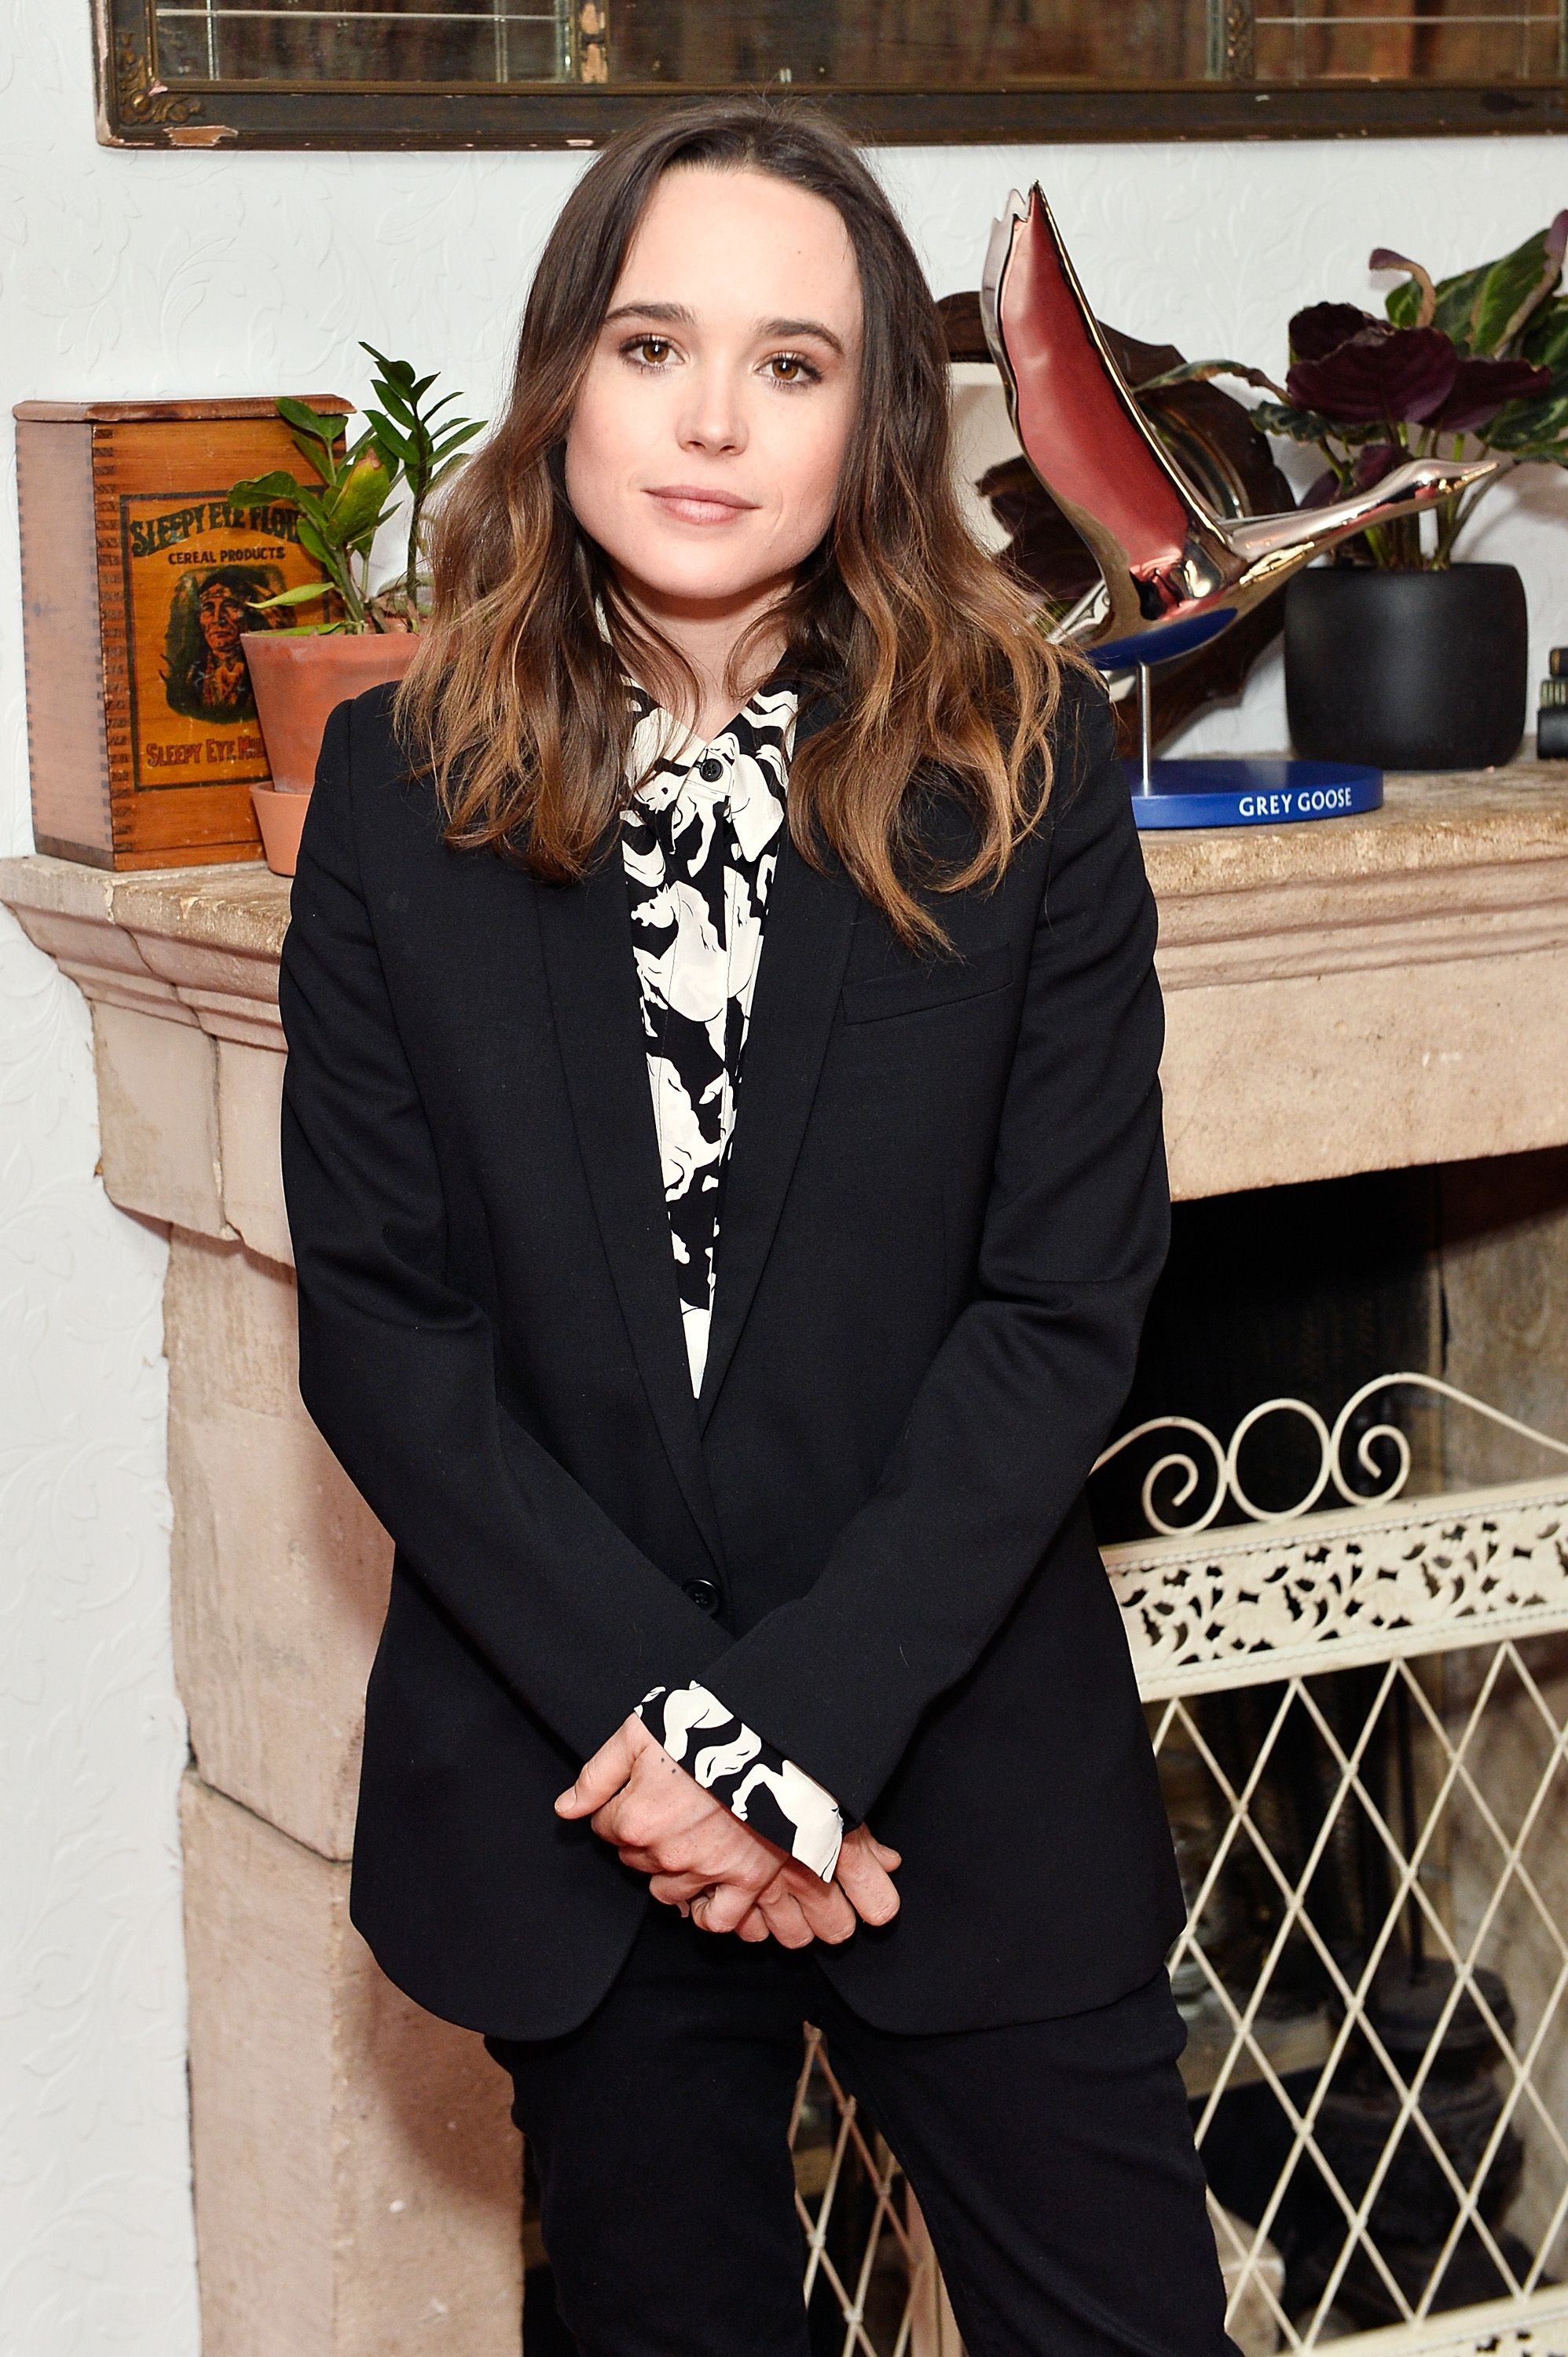 Ellen Page at the MY DAYS OF MERCY premiere party hosted by GREY GOOSE Vodka and Soho House on September 11, 2017 | Photo: Getty Images